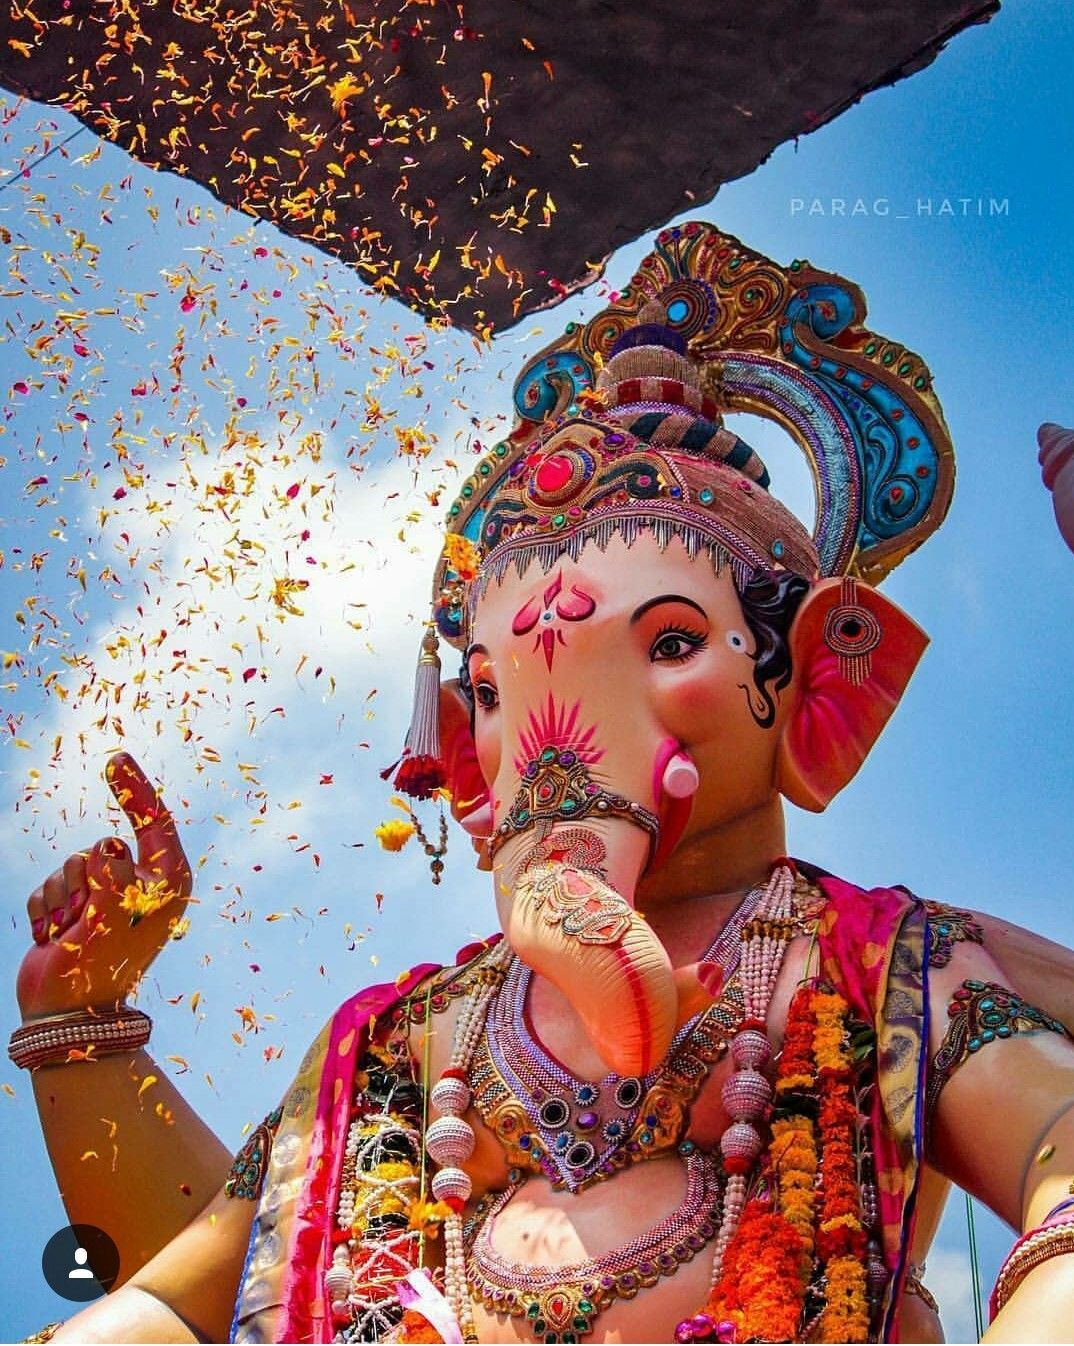 310 Ganpati Bappa Images Free Download Full Hd Pics Photo Gallery And Wallpapers 2019 Happy New Year 2020 In 2020 Ganesha Art Ganpati Bappa Happy New Year 2020